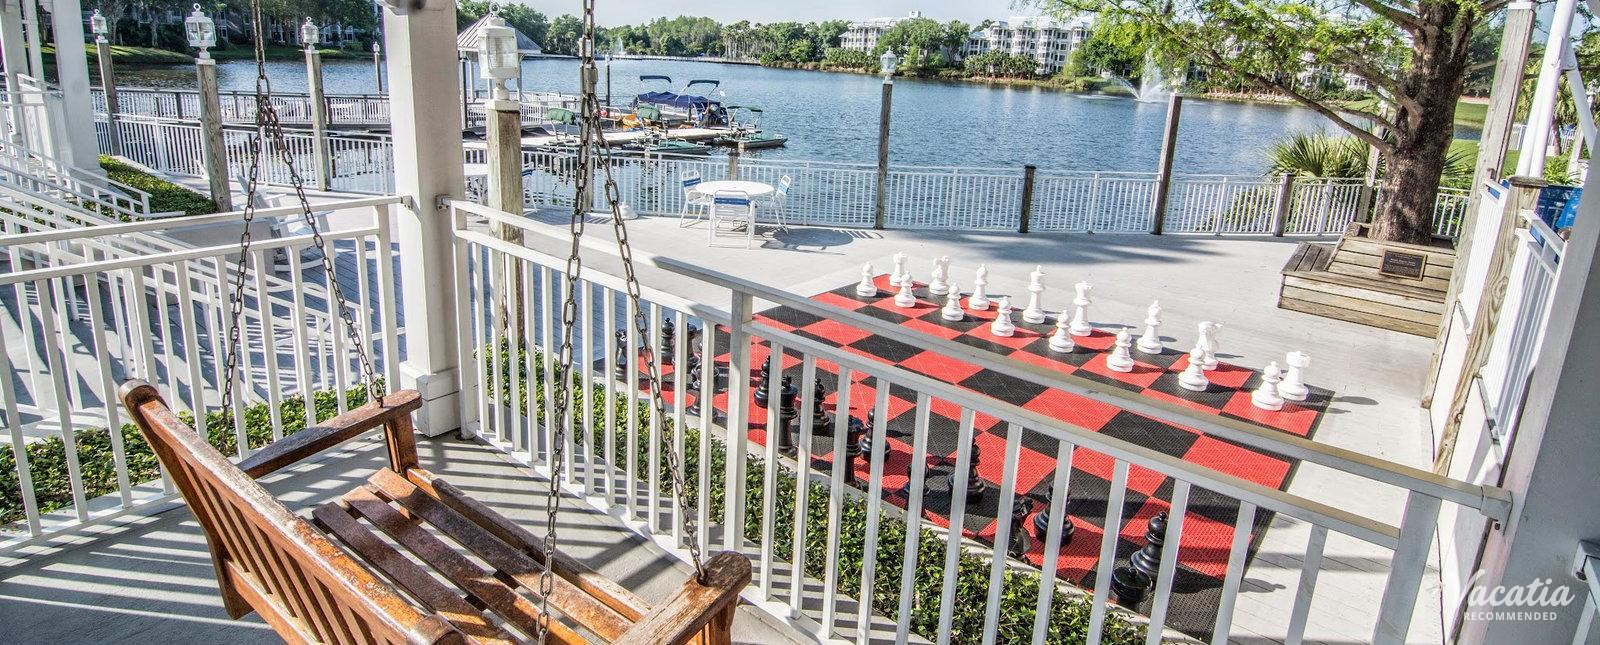 Marriott's Cypress Harbour lake with boat rentals